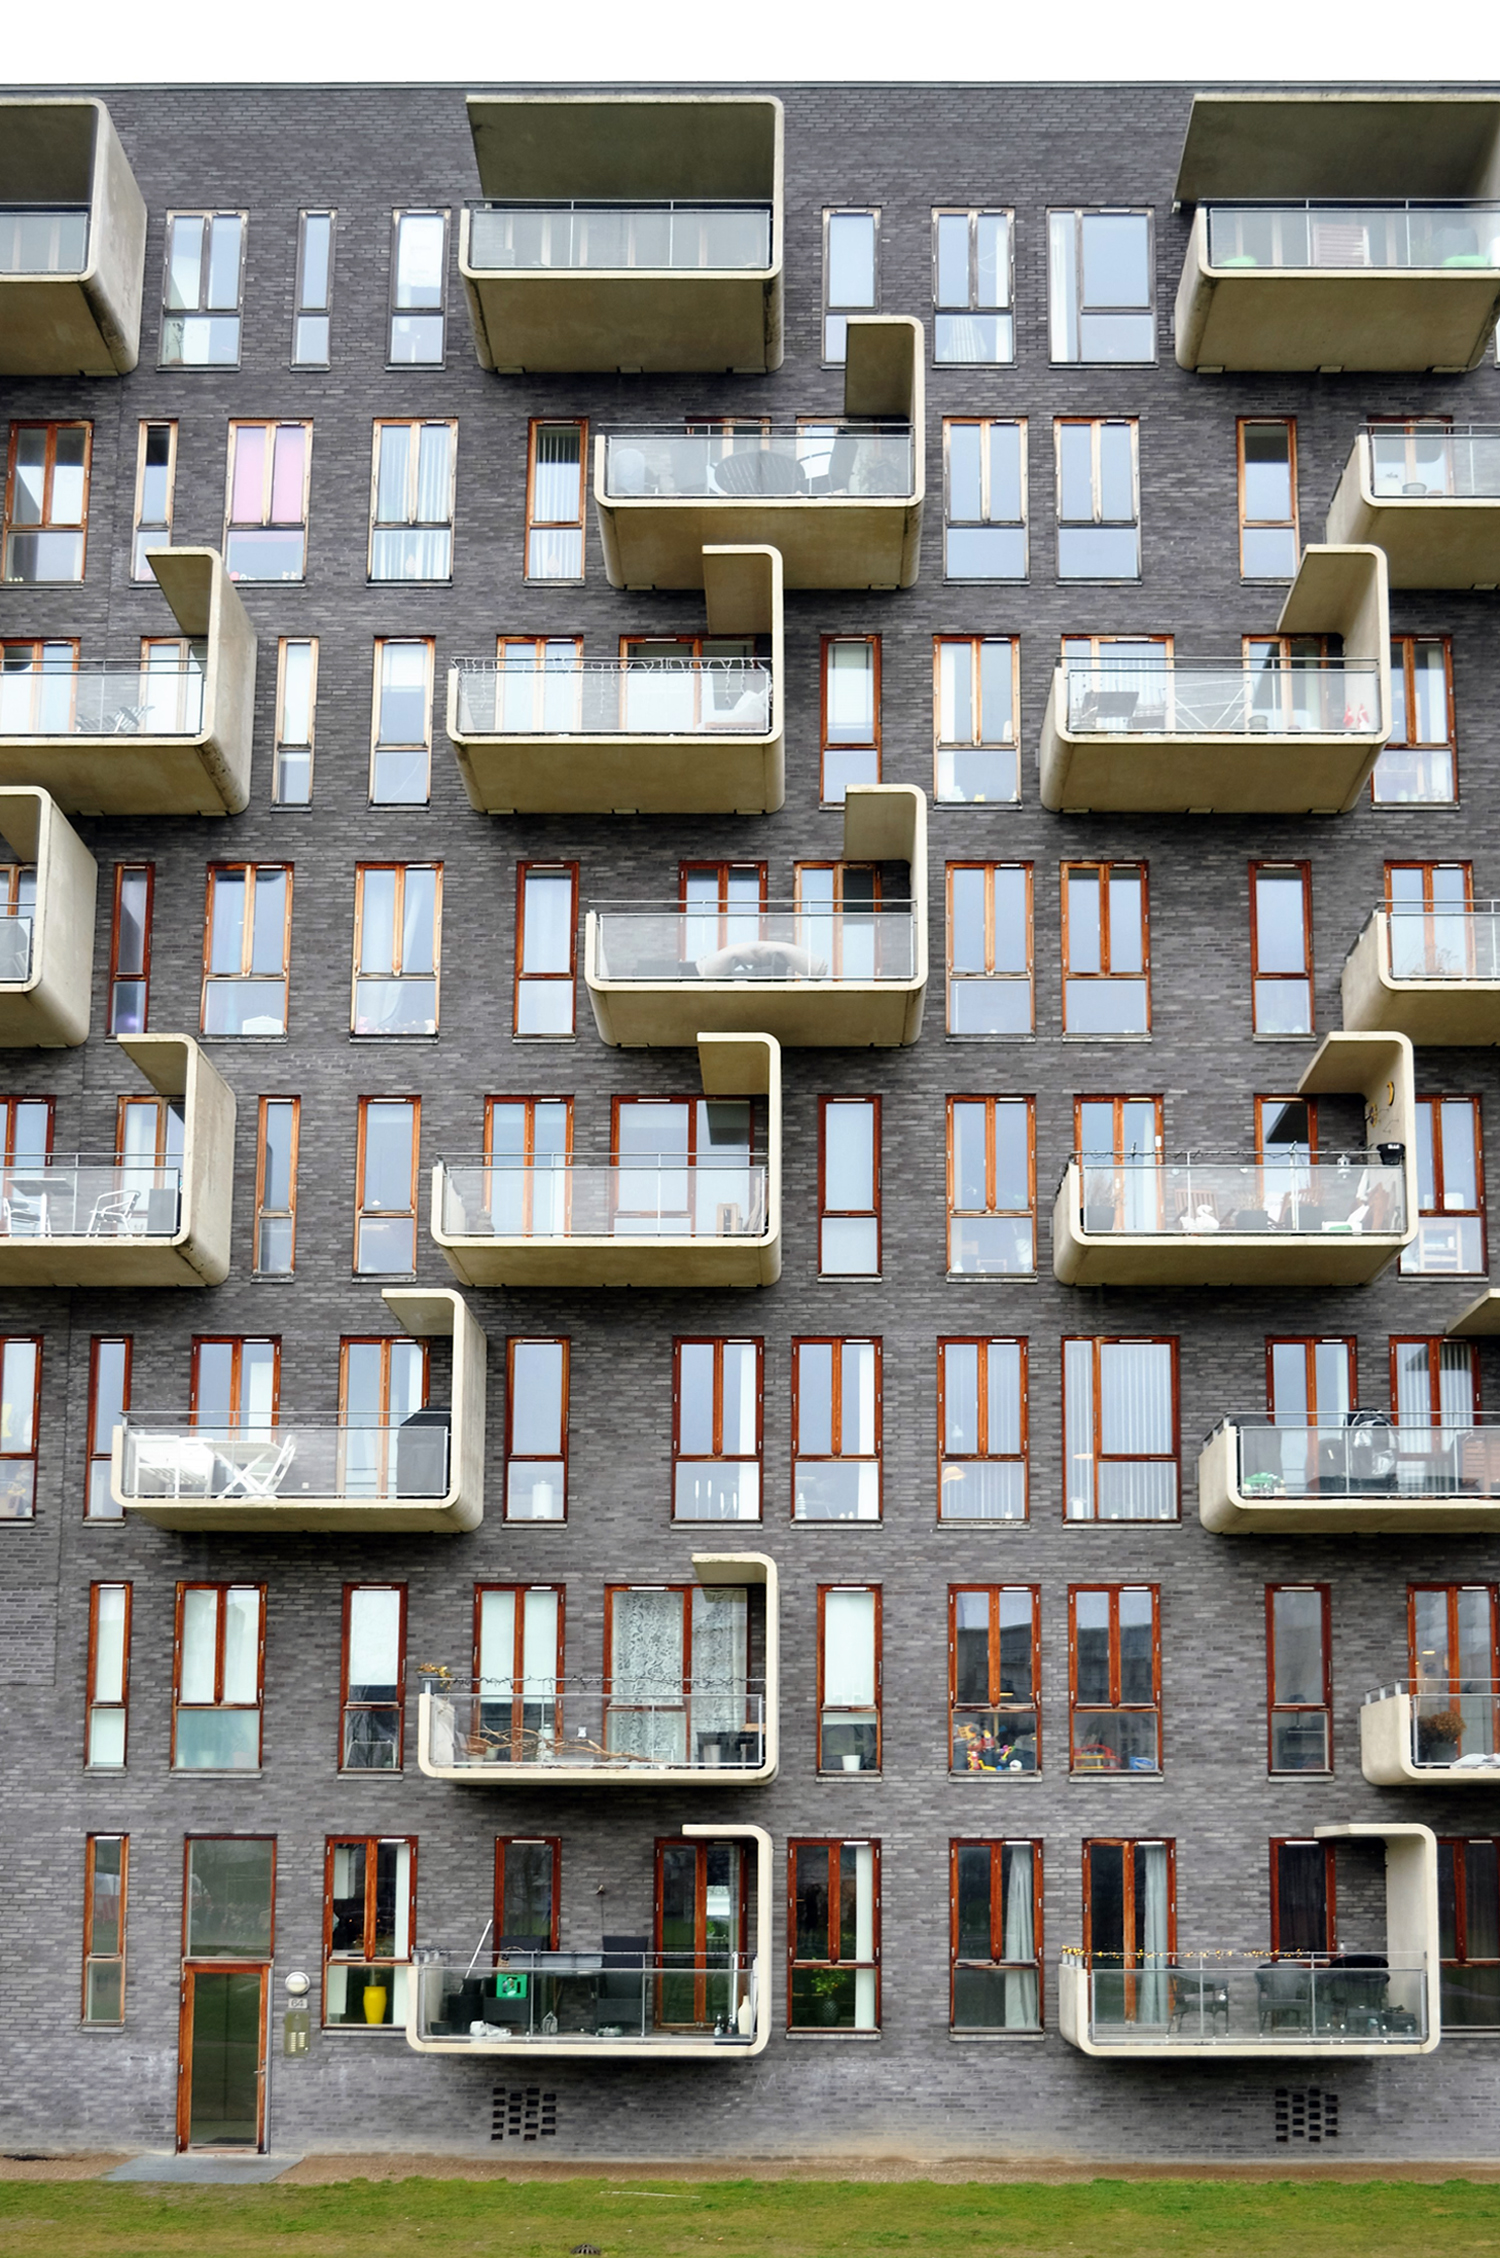 Ørestad Huset 01, photo by author